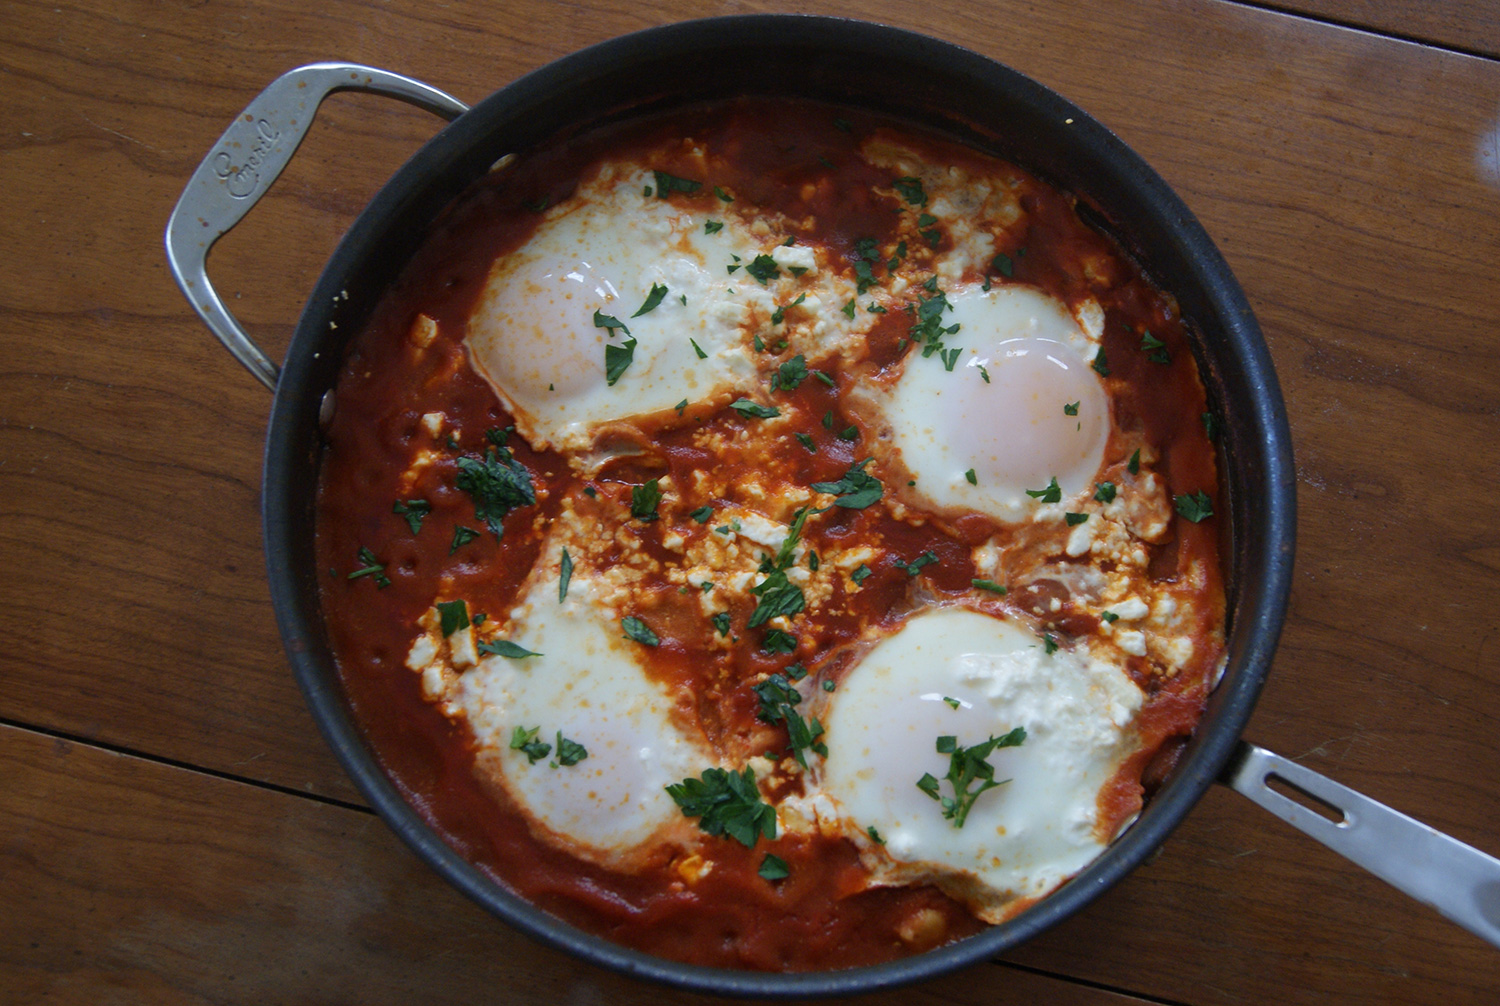 bulgarian-eggs-baked-in-tomato-sauce-1